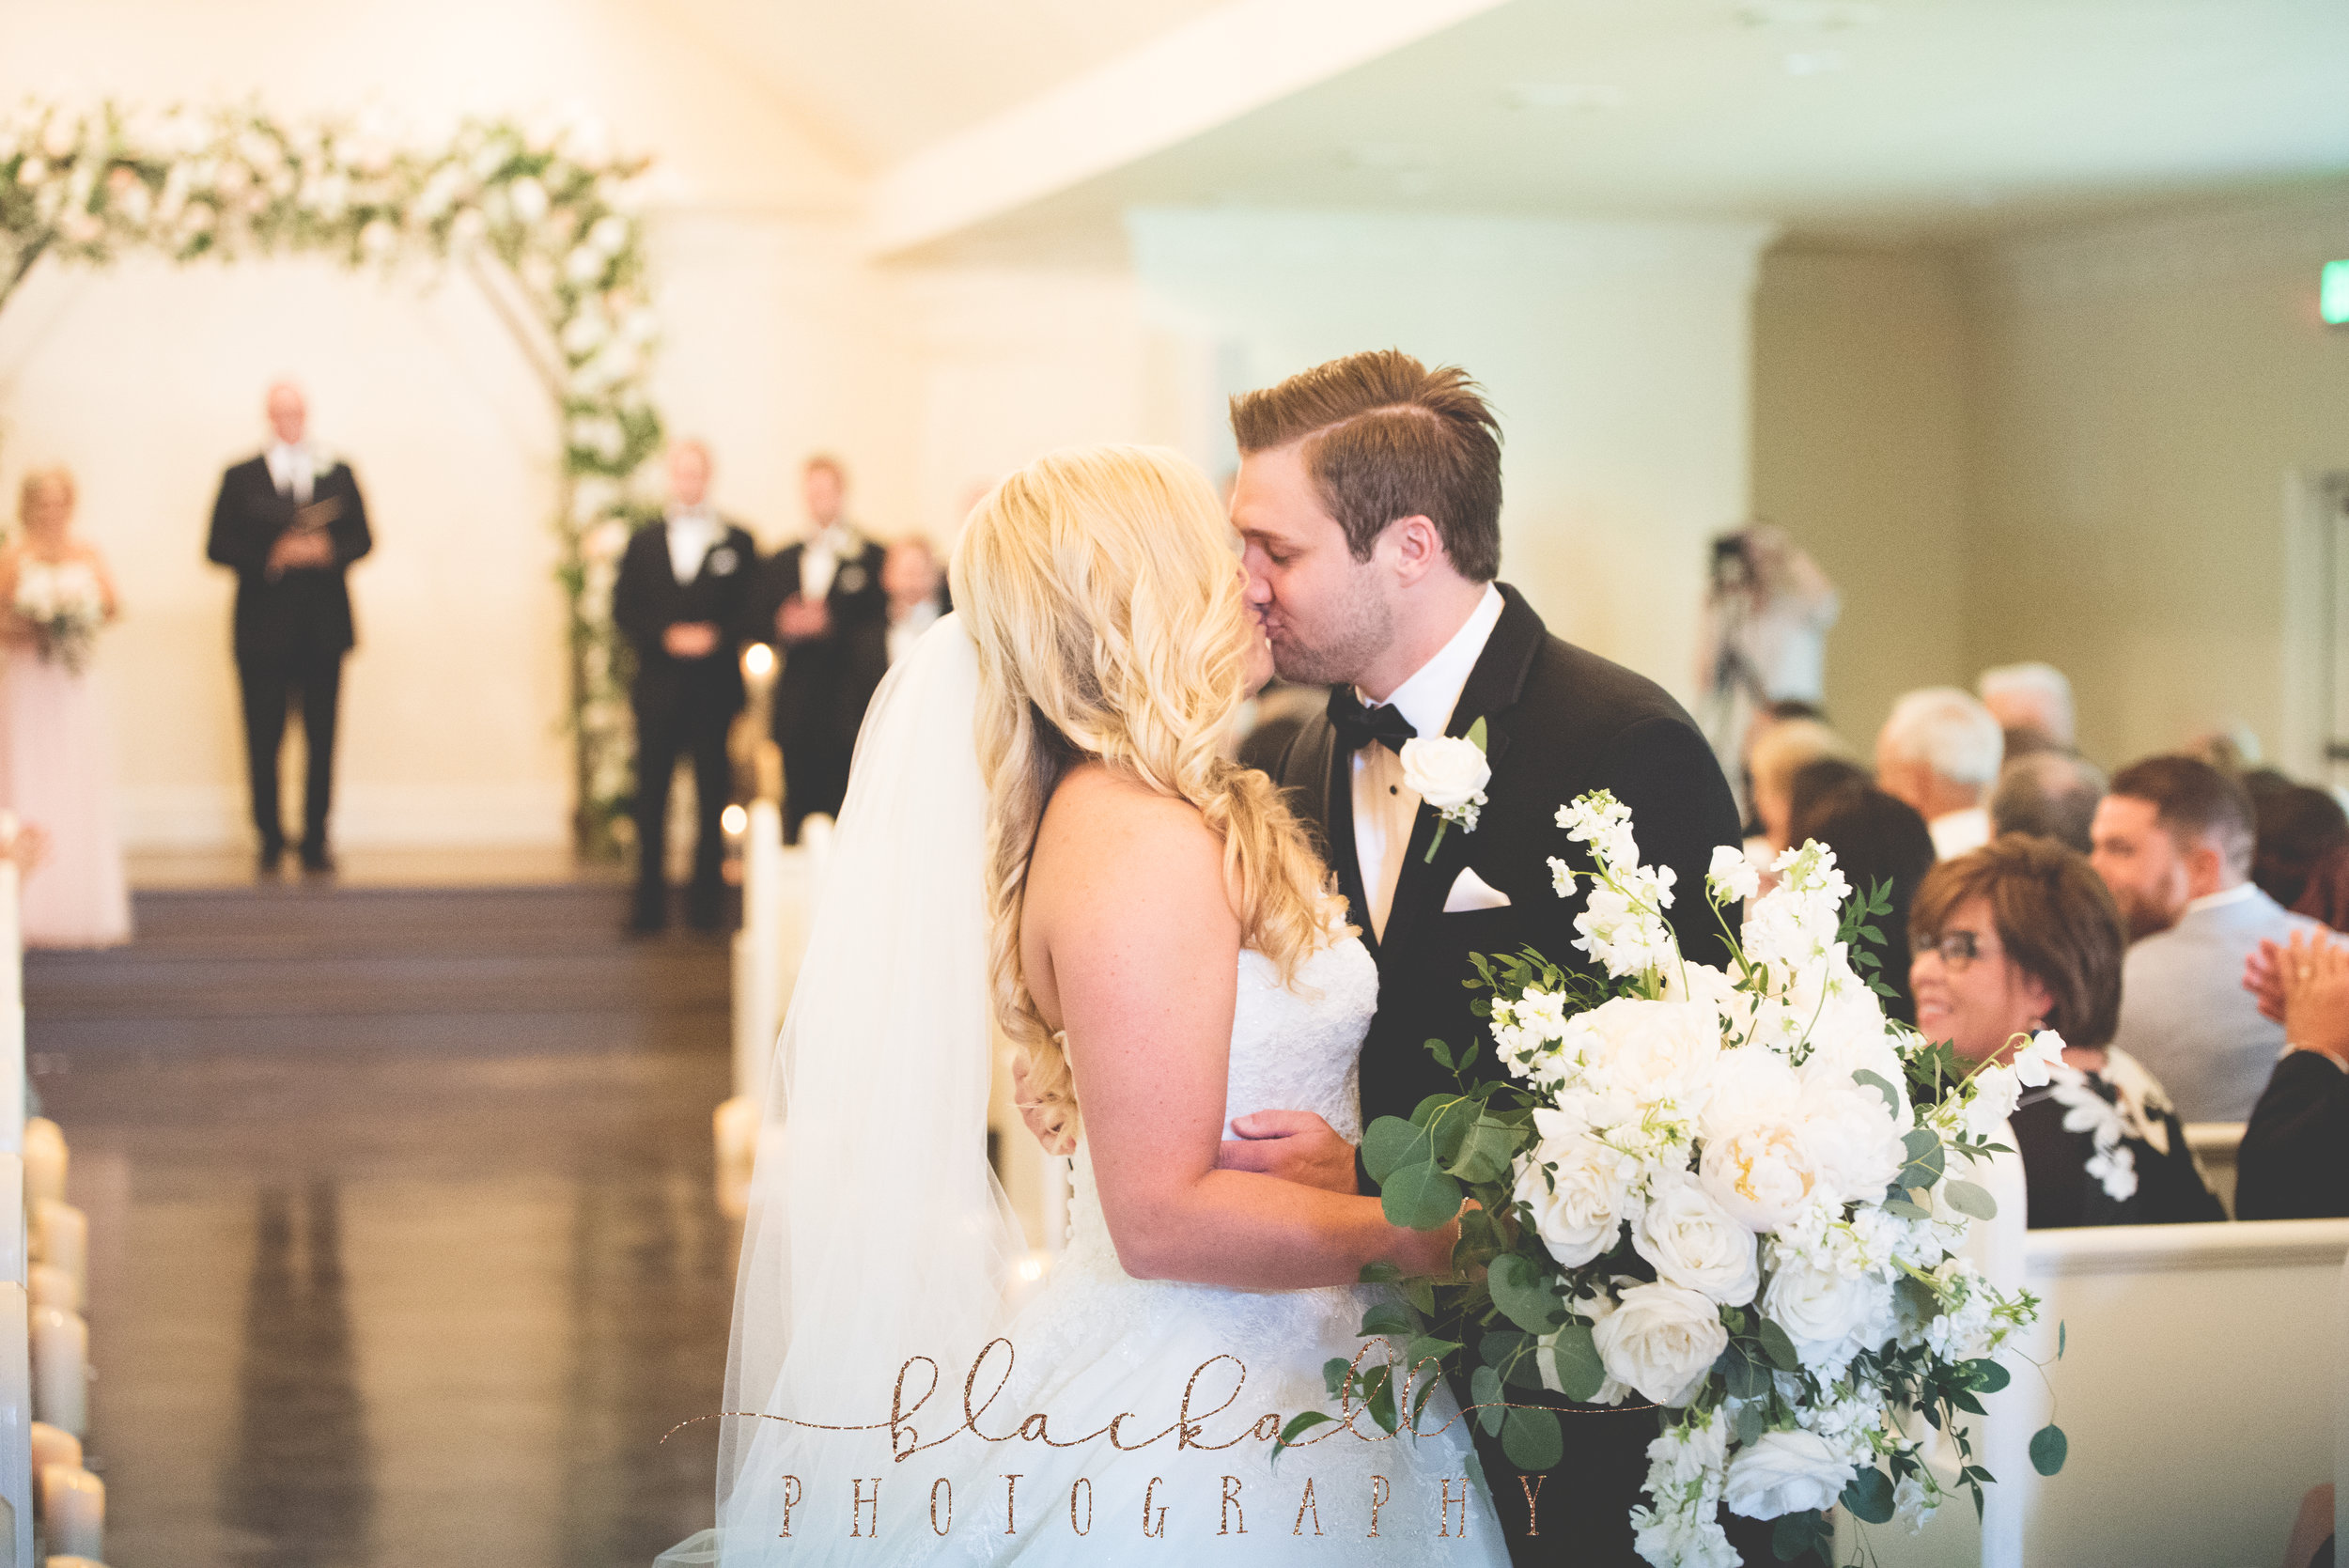 WEDDING_BlackallPhotography_28.JPG